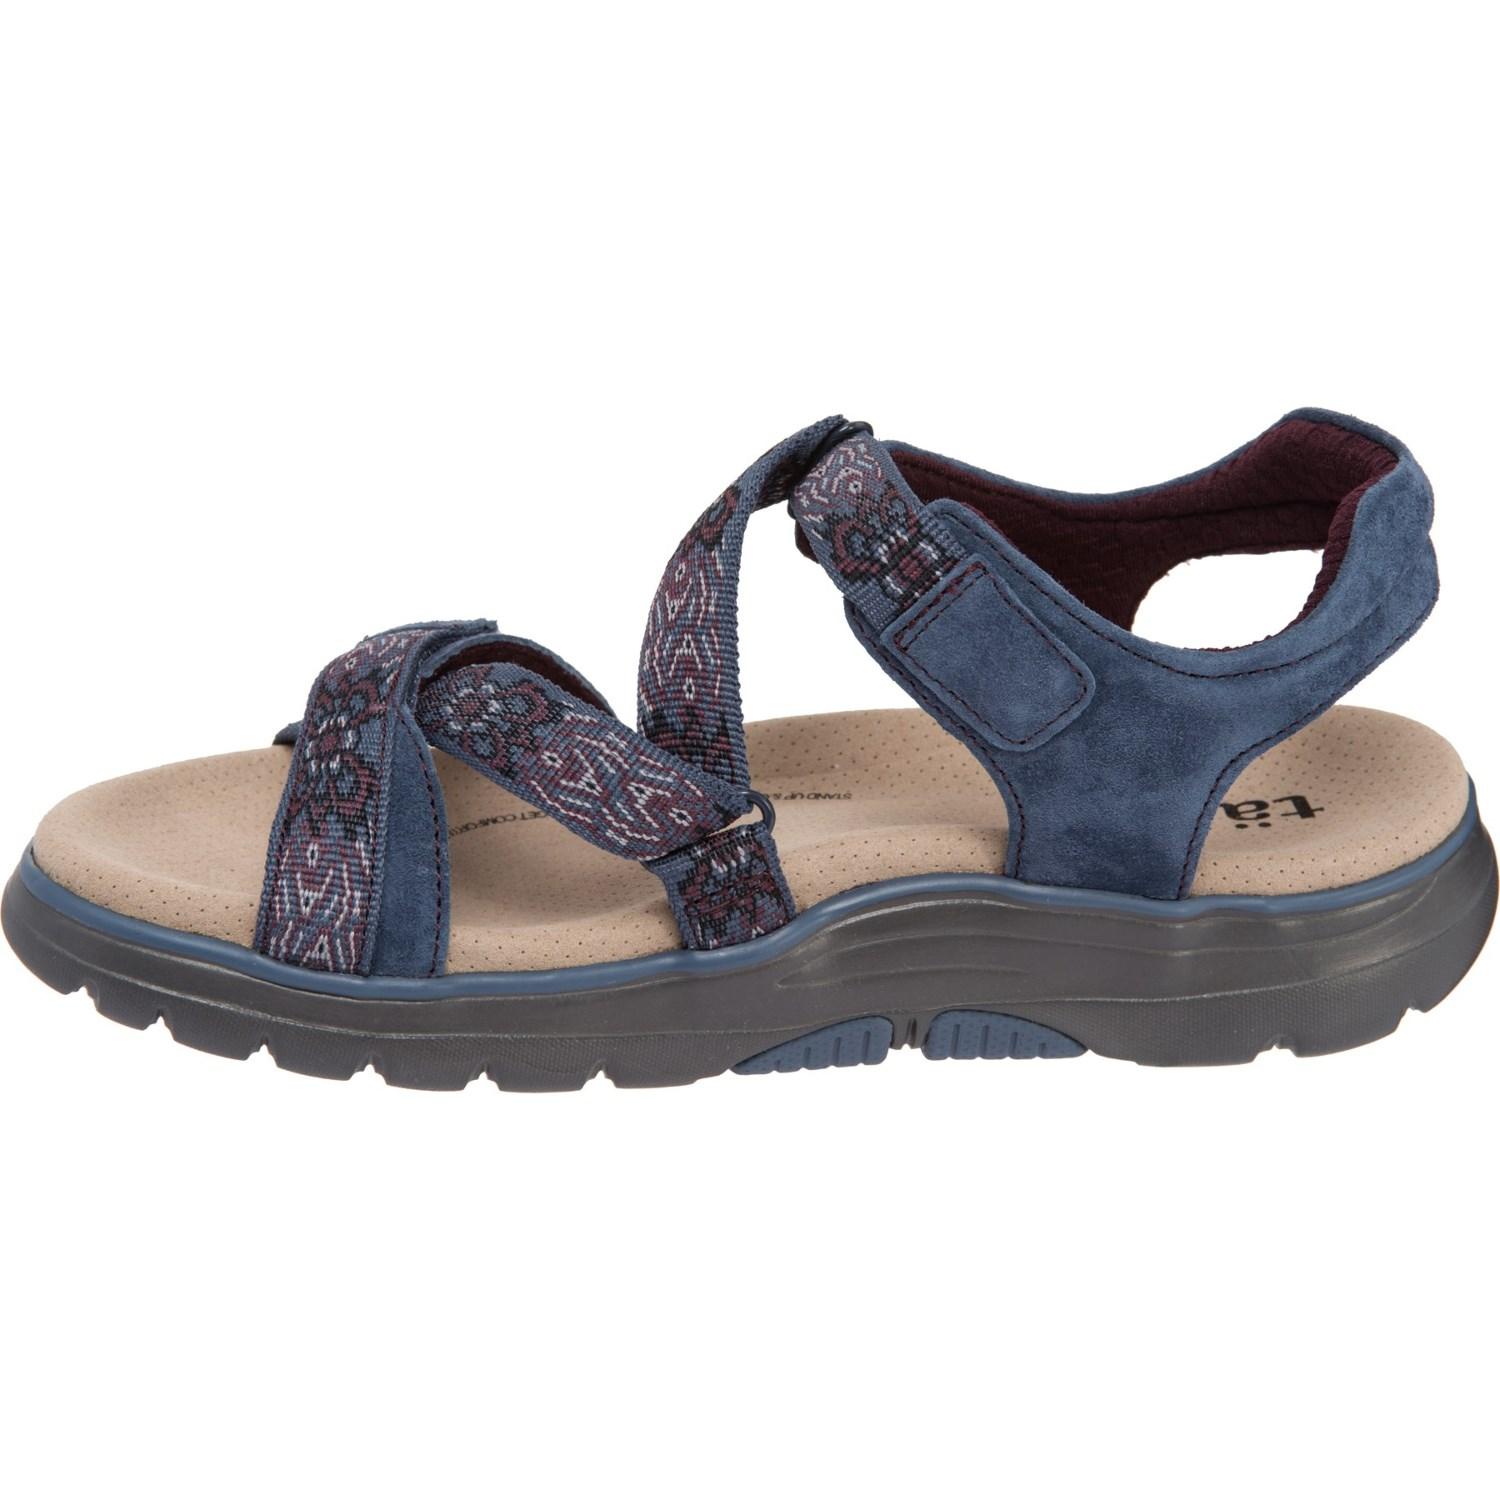 609cc26f8 Taos Footwear Zen Sandals (For Women) - Save 50%